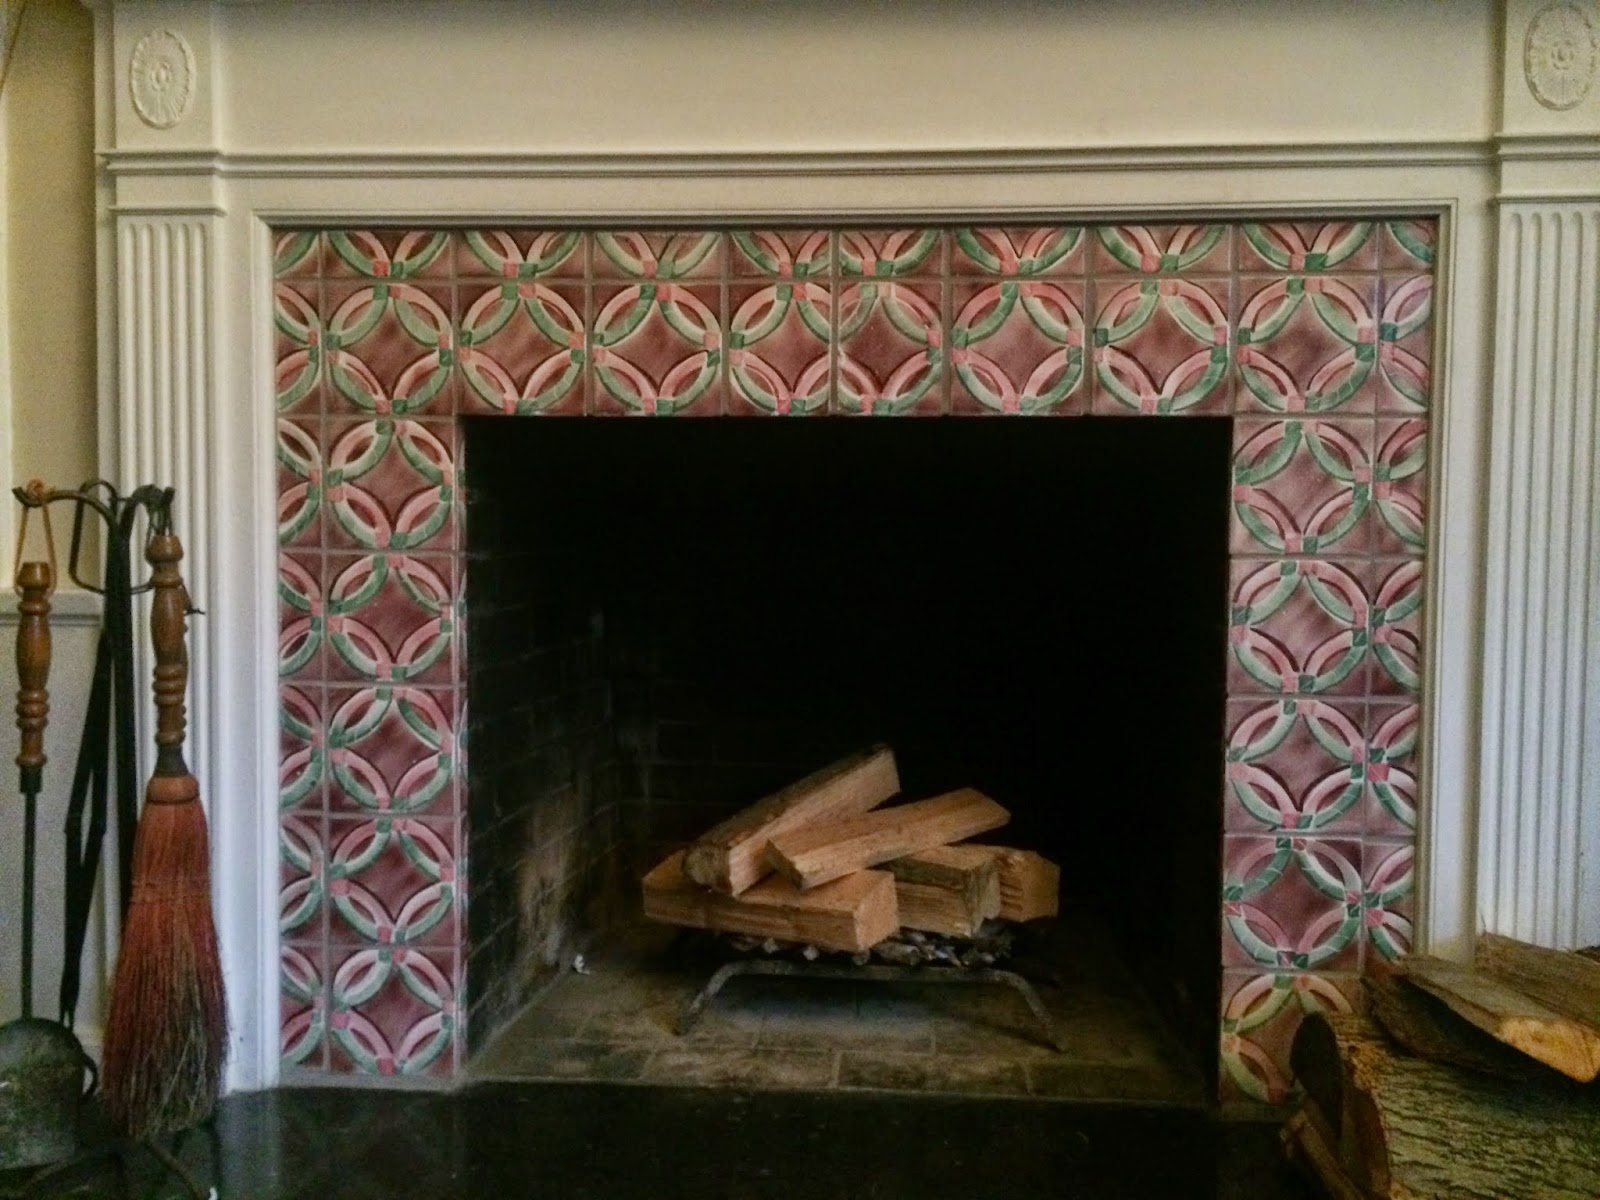 Amish Quilt Pattern Ceramic Tile Fireplace Surround ...